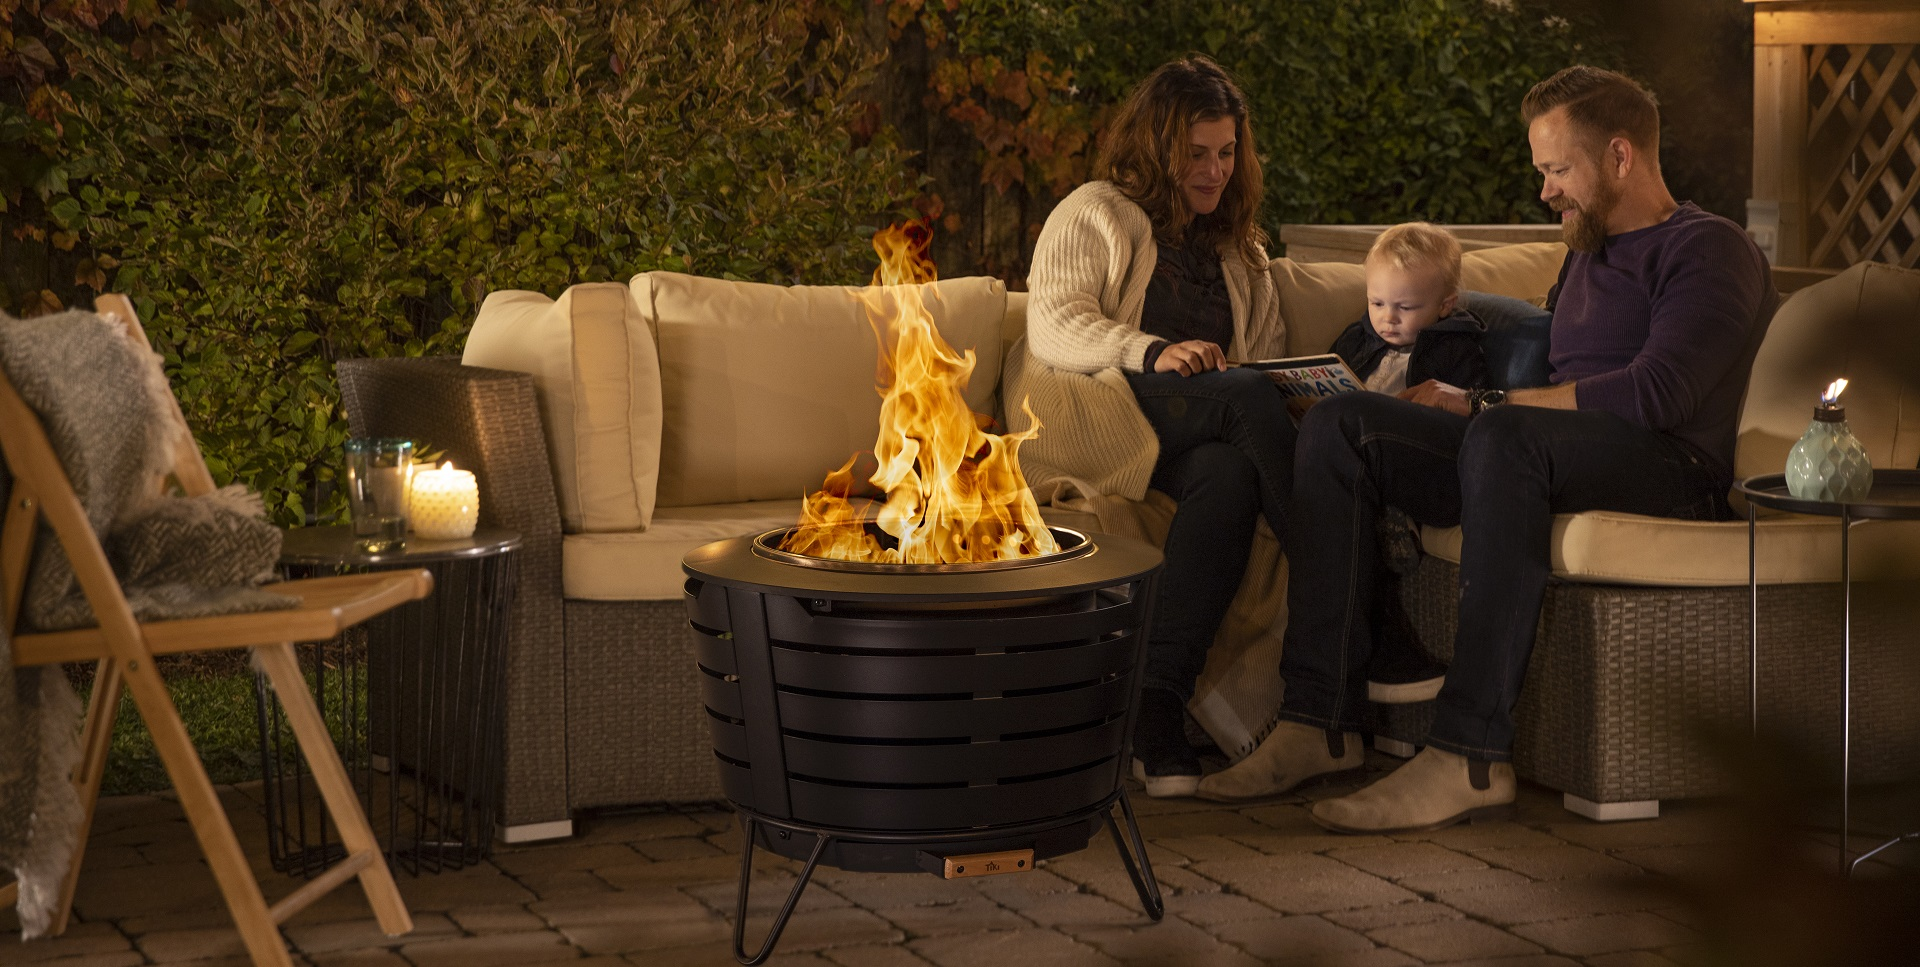 family reading book near fire pit